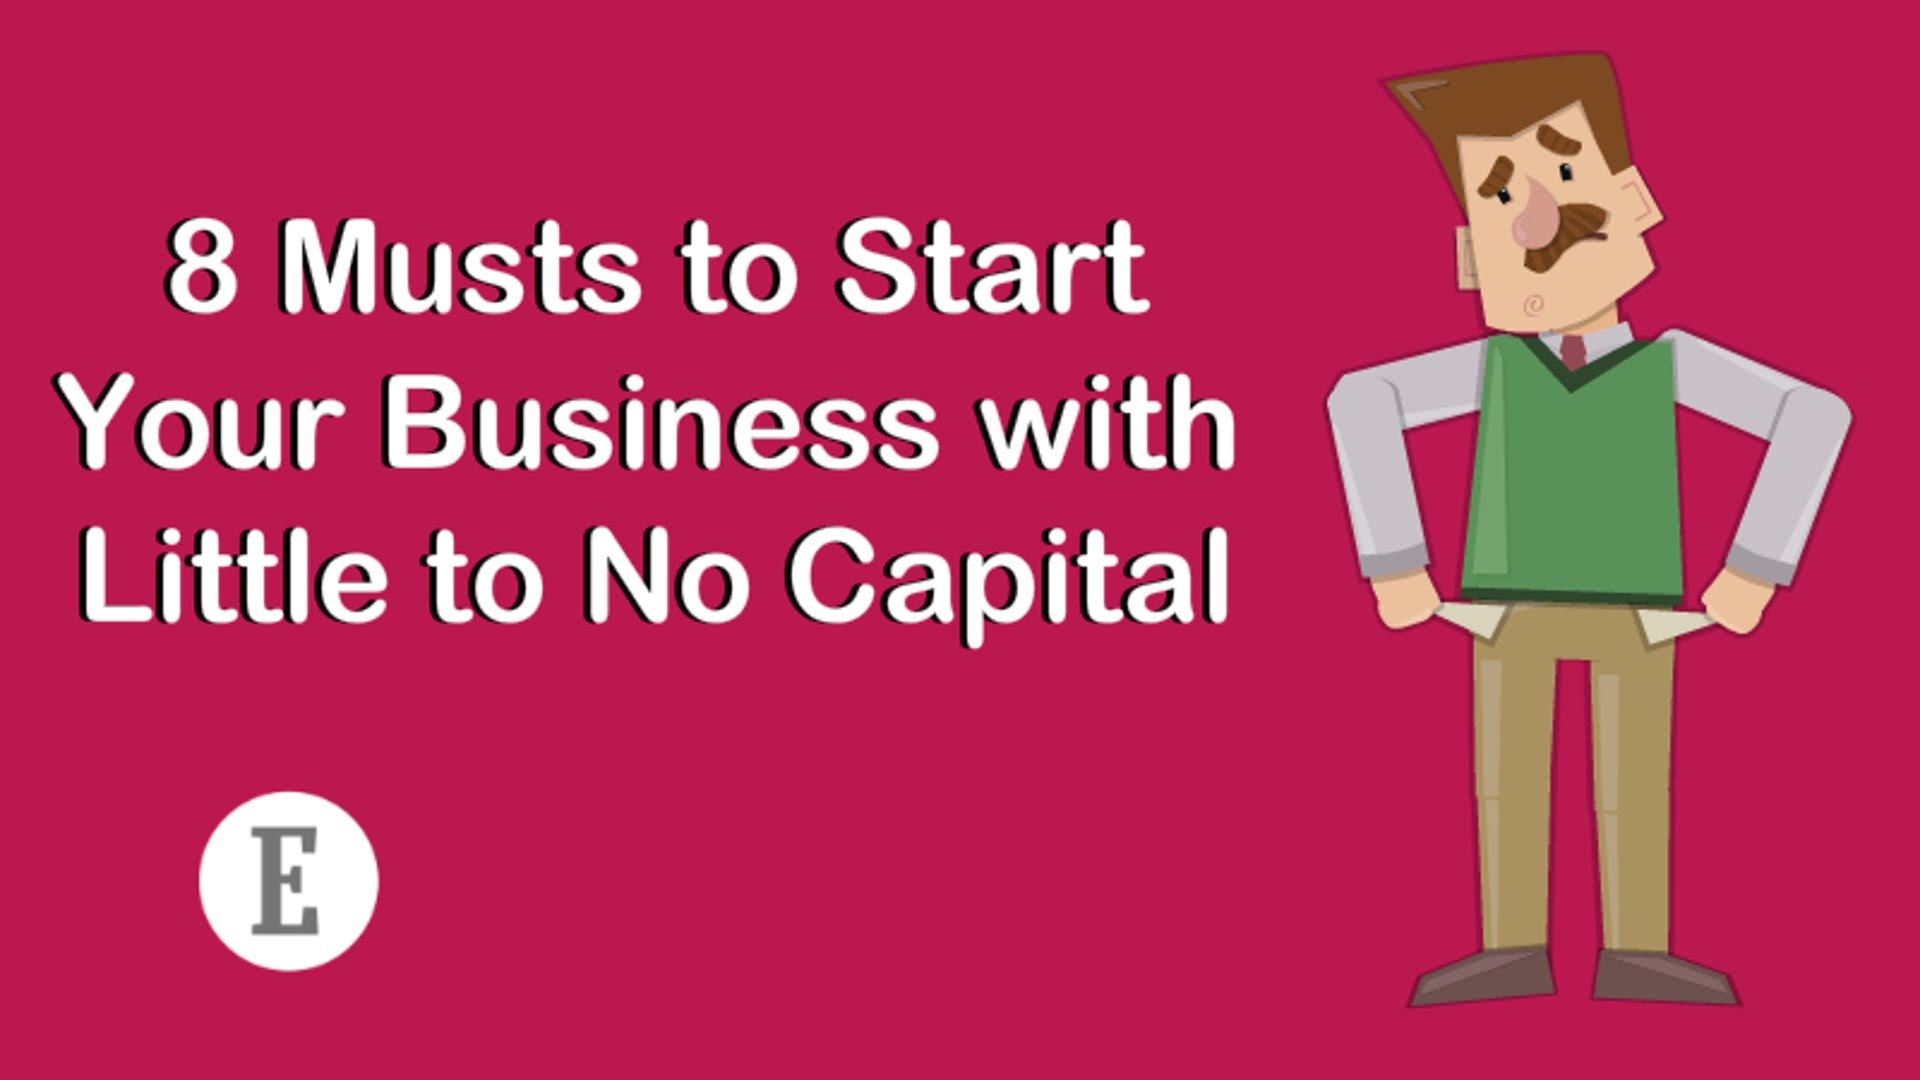 Great Idea but Little Capital? Don't Let That Hold You Back.